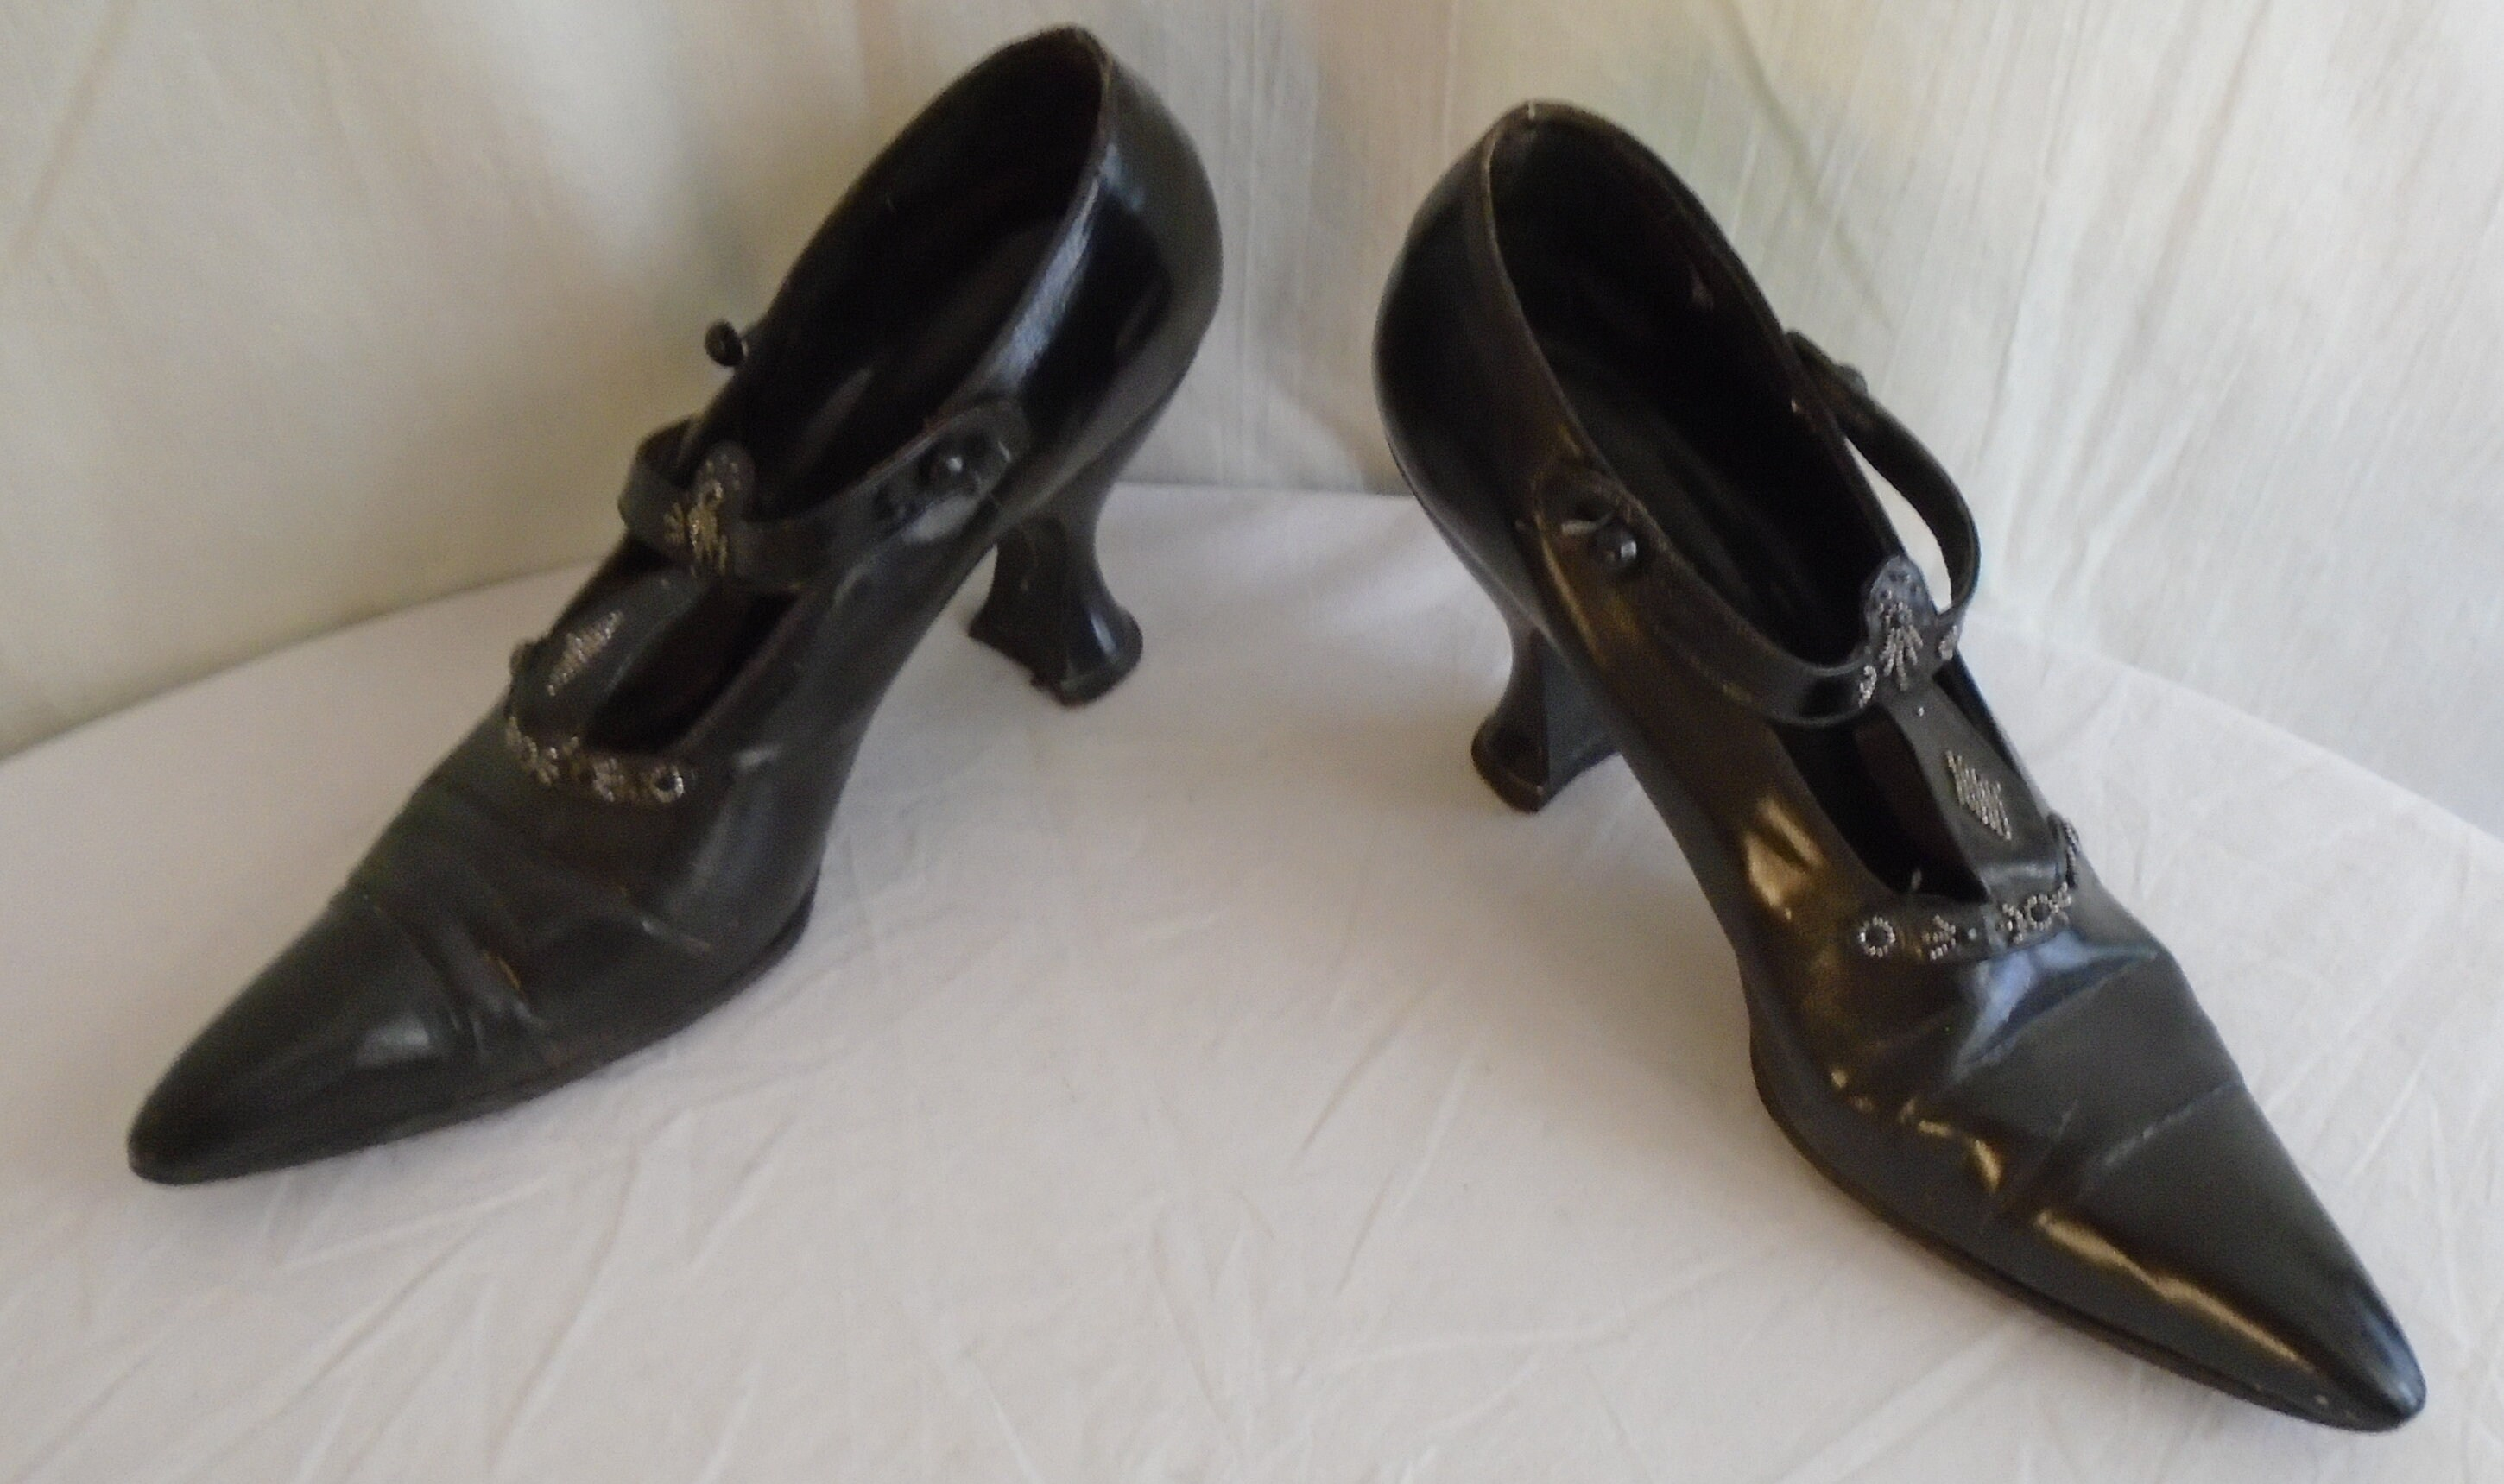 Vintage 1910s Shoes Edwardian Black Leather Louis Mary Janes with Beading Louis Leather Heel 39e823